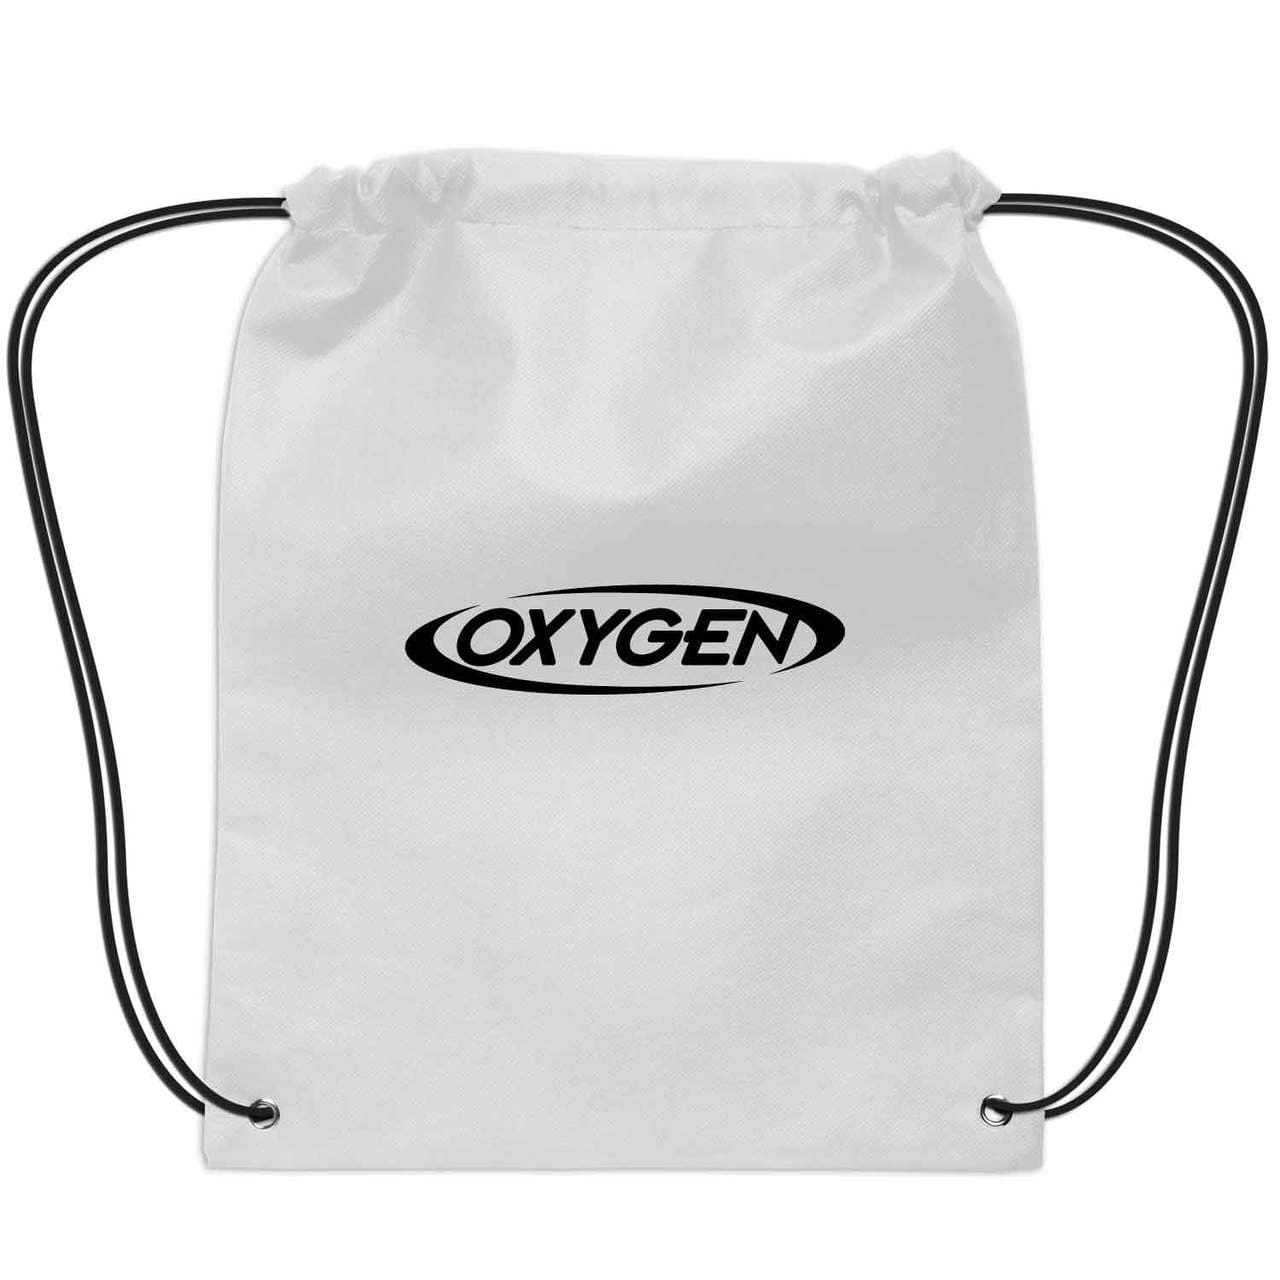 Small Non-Woven Drawstring Backpack - White:9582.preview.jpg